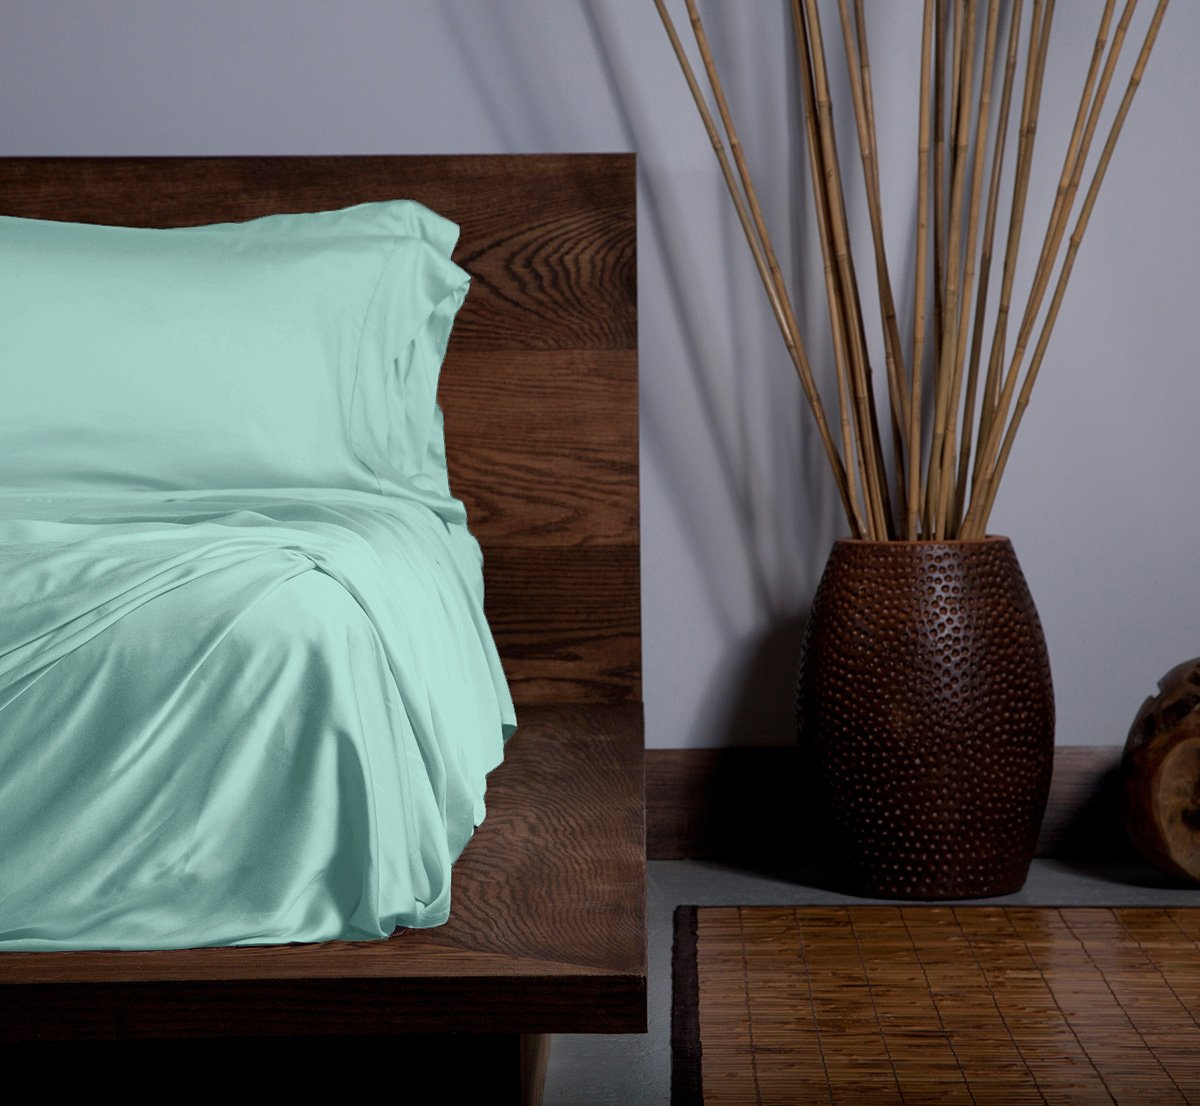 SHEEX ECOSHEEX Bamboo Origin Sheet Set with 2 Pillowcases, Amazingly Soft Luxury Sateen Sheets That Adapt to Your Body Temperature for Year-Round Comfort, Aqua (King)